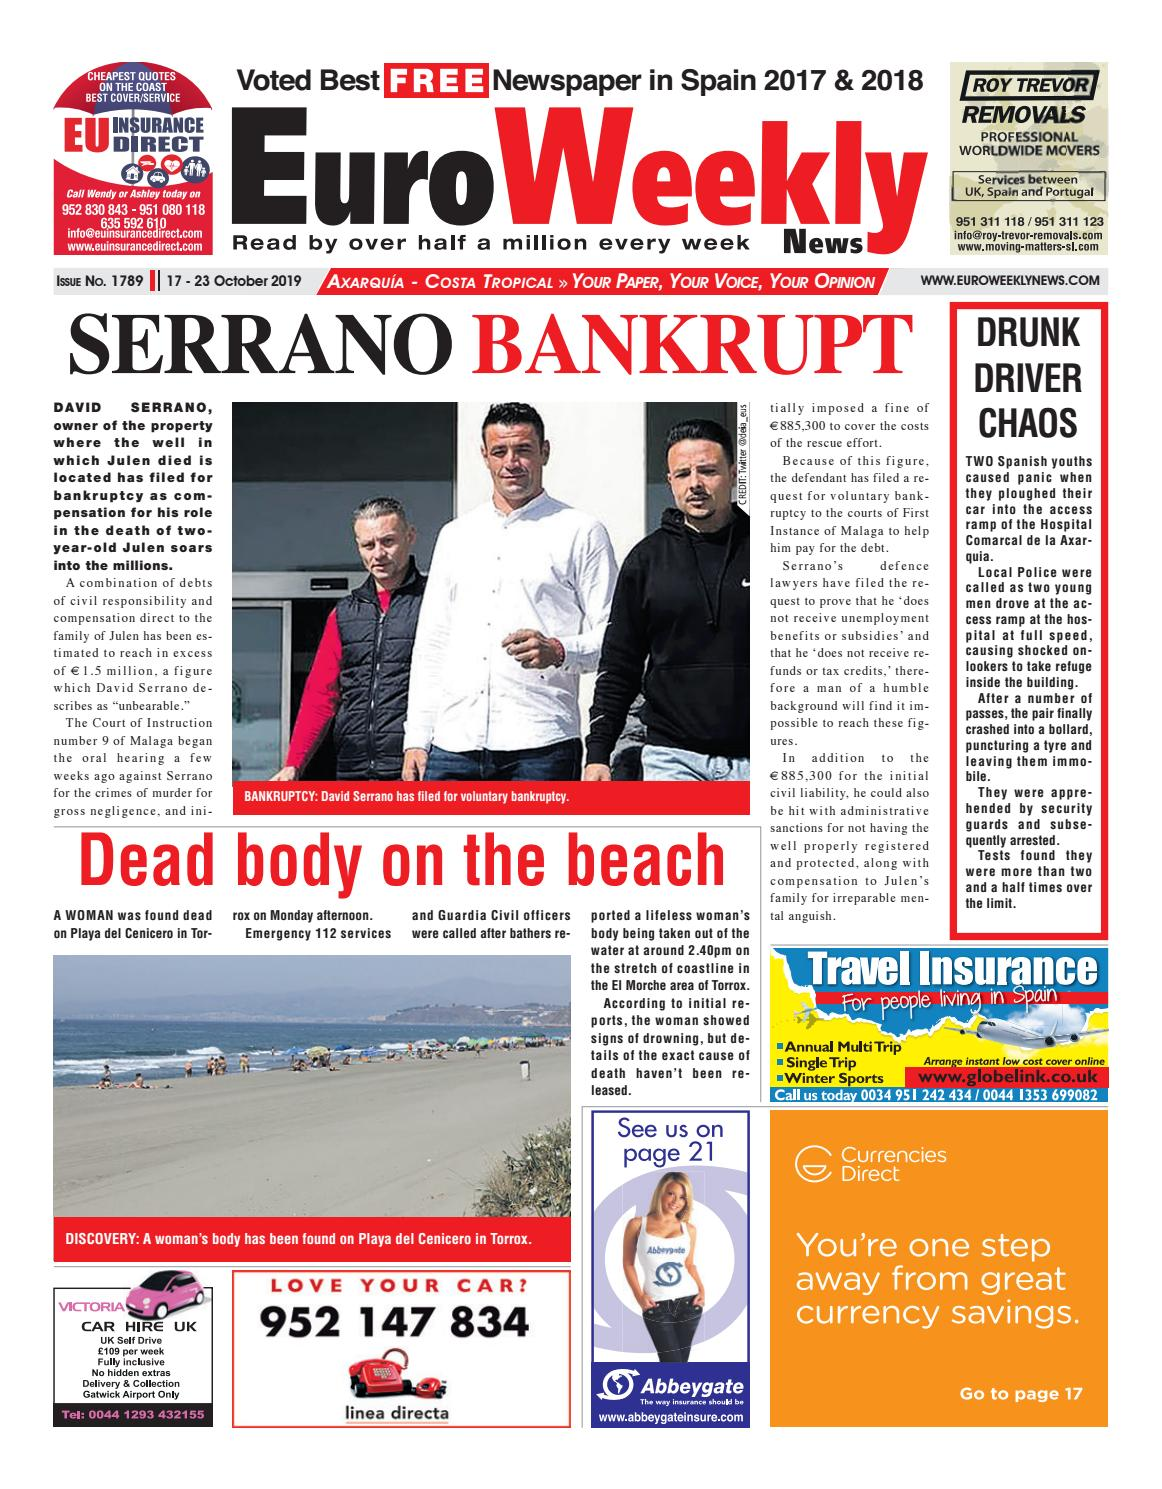 Euro Weekly News - Axarquia 17 - 23 October 2019 Issue 1789 ...